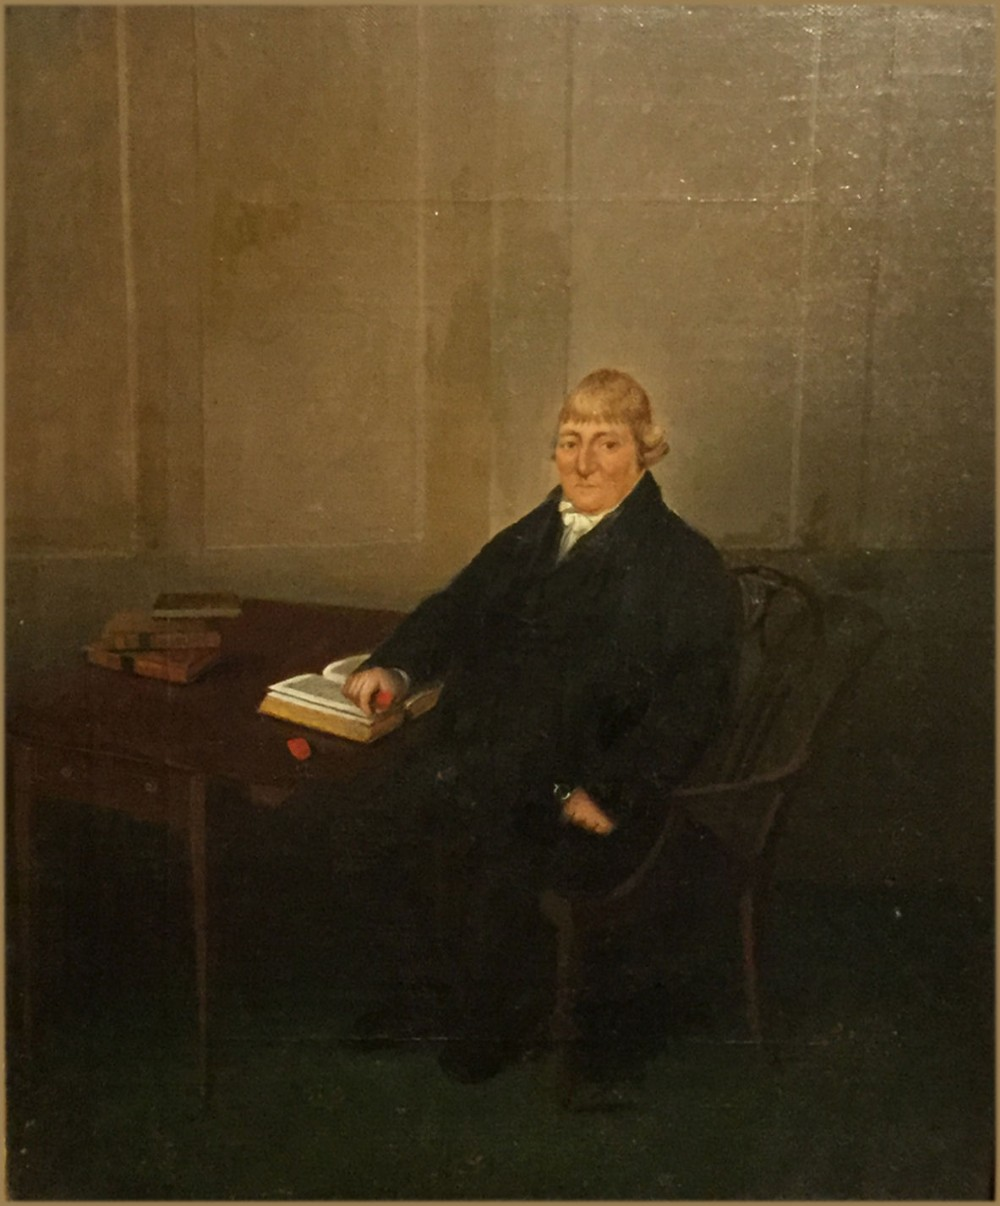 stephen taylor fl 1808 1849a gentleman seated on a chippendale desk chair in a paneled interior